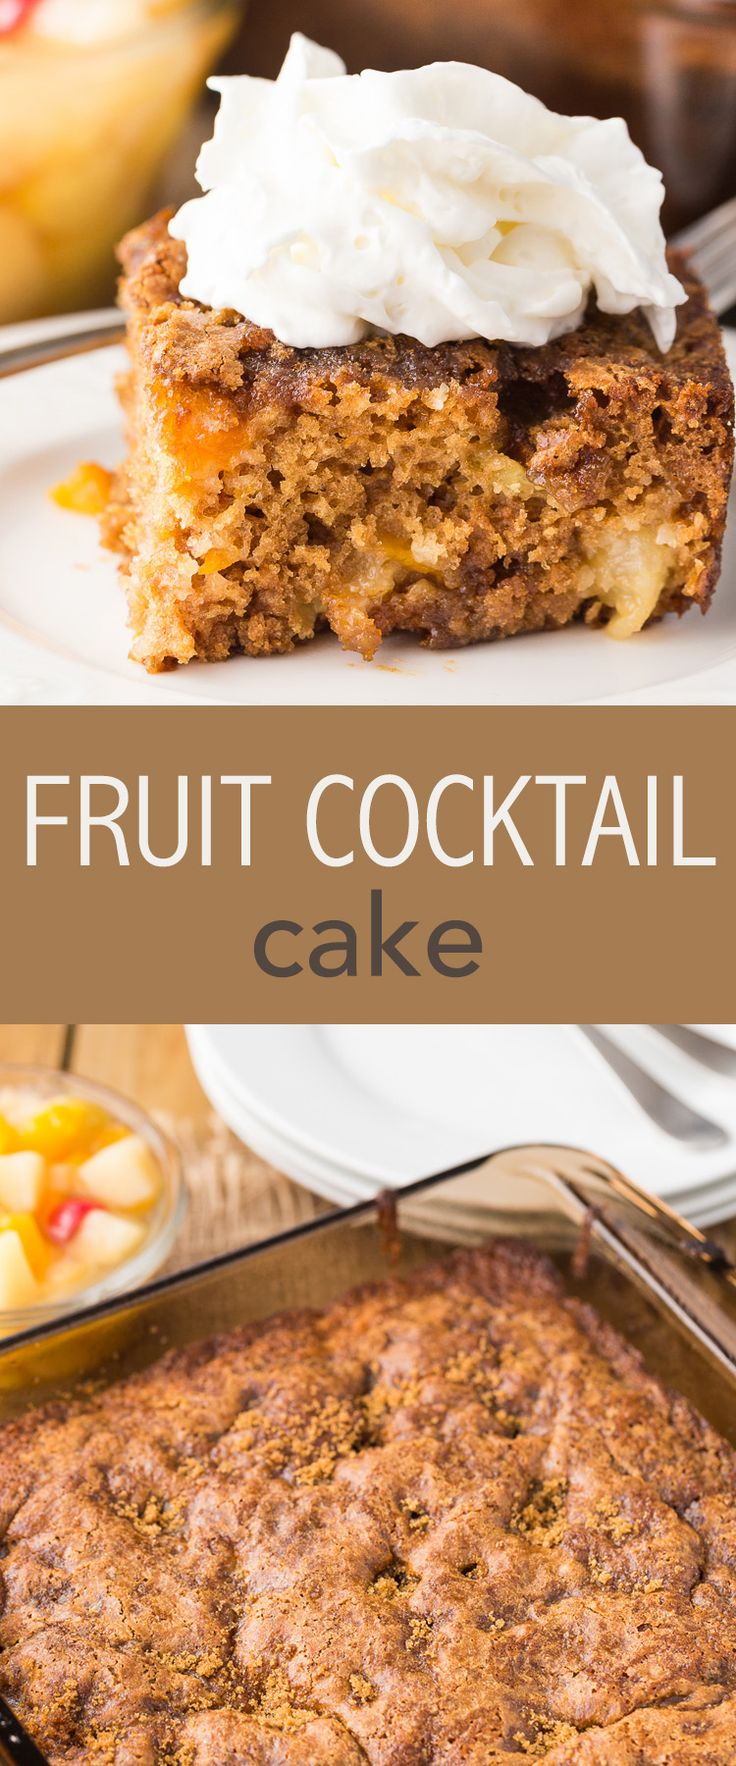 Maybe one of the easiest desert recipes to make, Fruit Cocktail Cake is my go-to when I'm time crunched or just don't feel like spending a ton of time ..